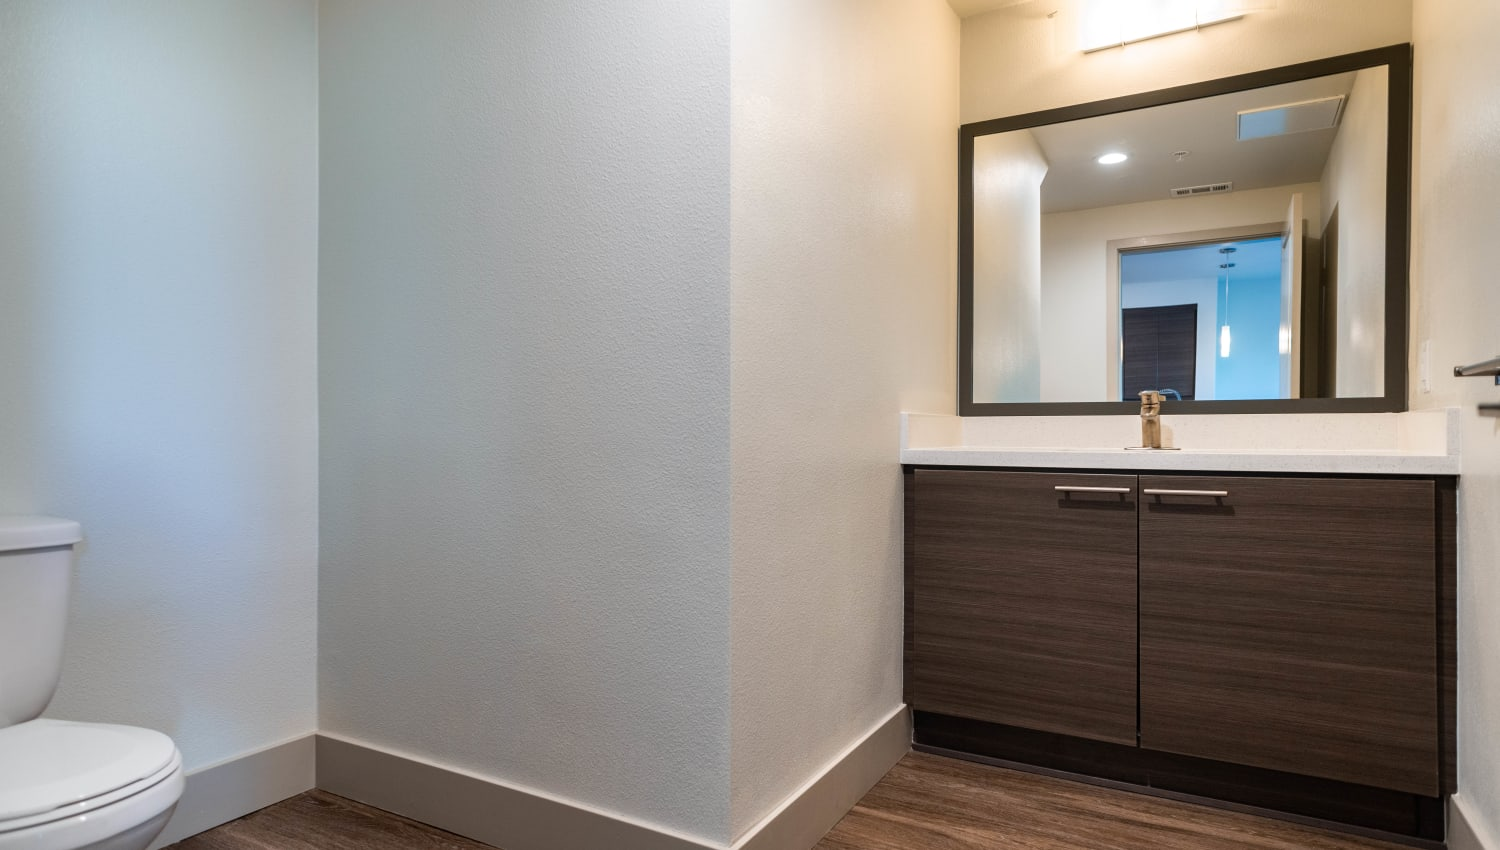 Custom wood cabinetry and a large vanity mirror in a model apartment's bathroom at Fusion Apartments in Irvine, California